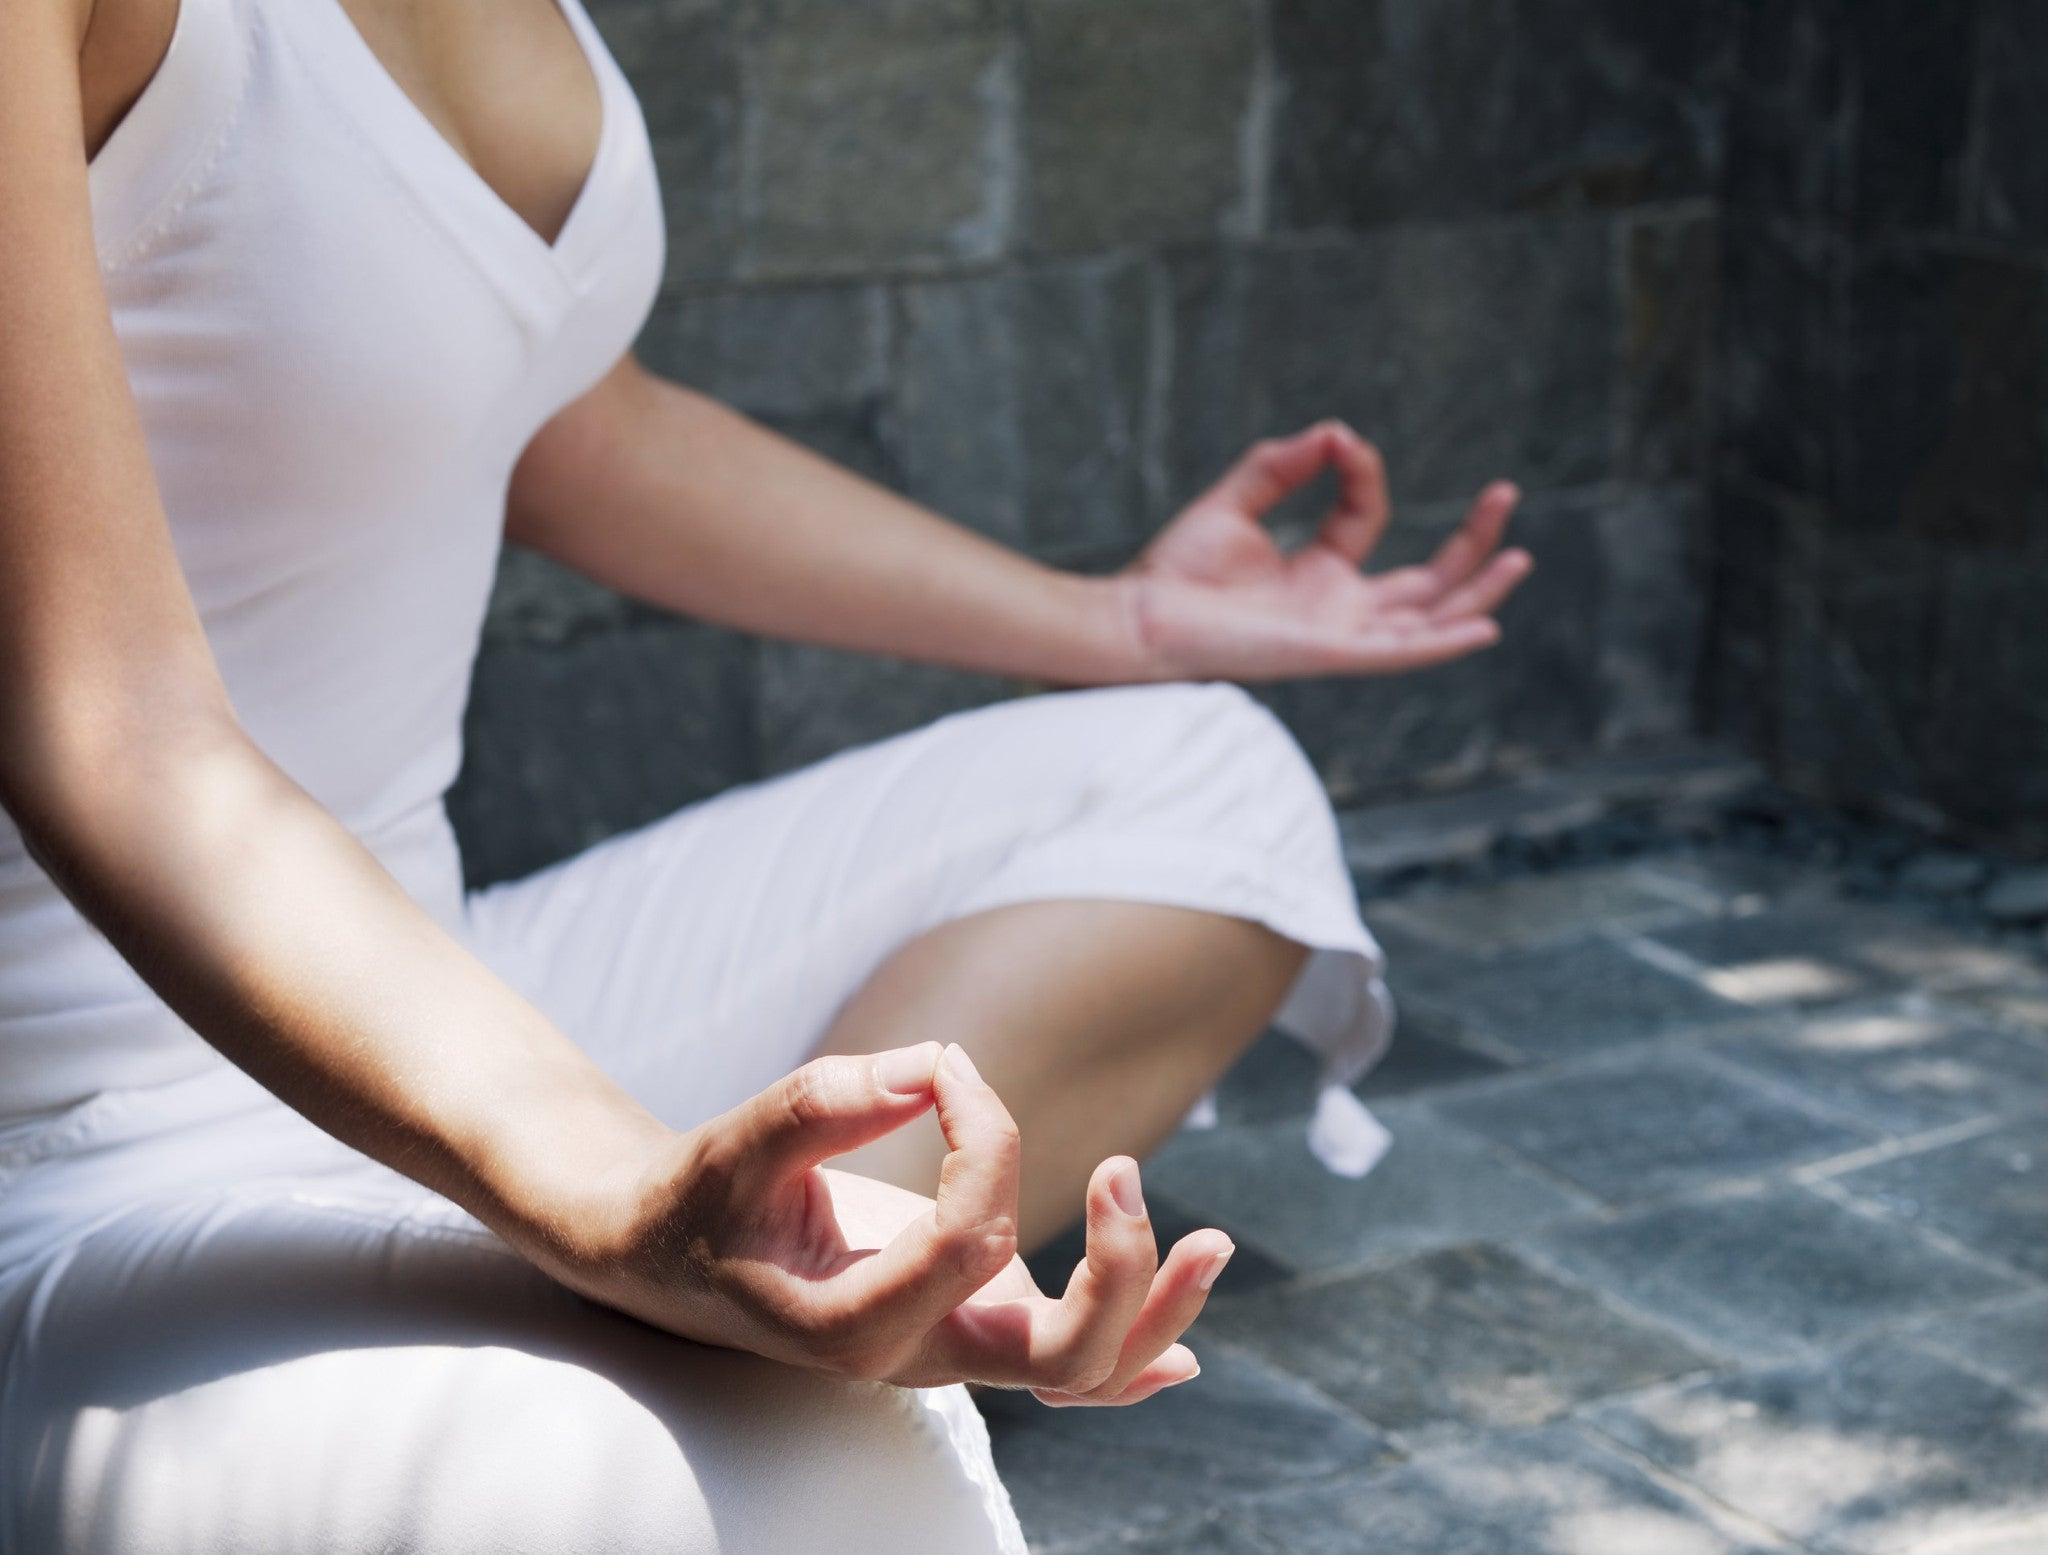 Study confirms that breast cancer patients benefit from meditation